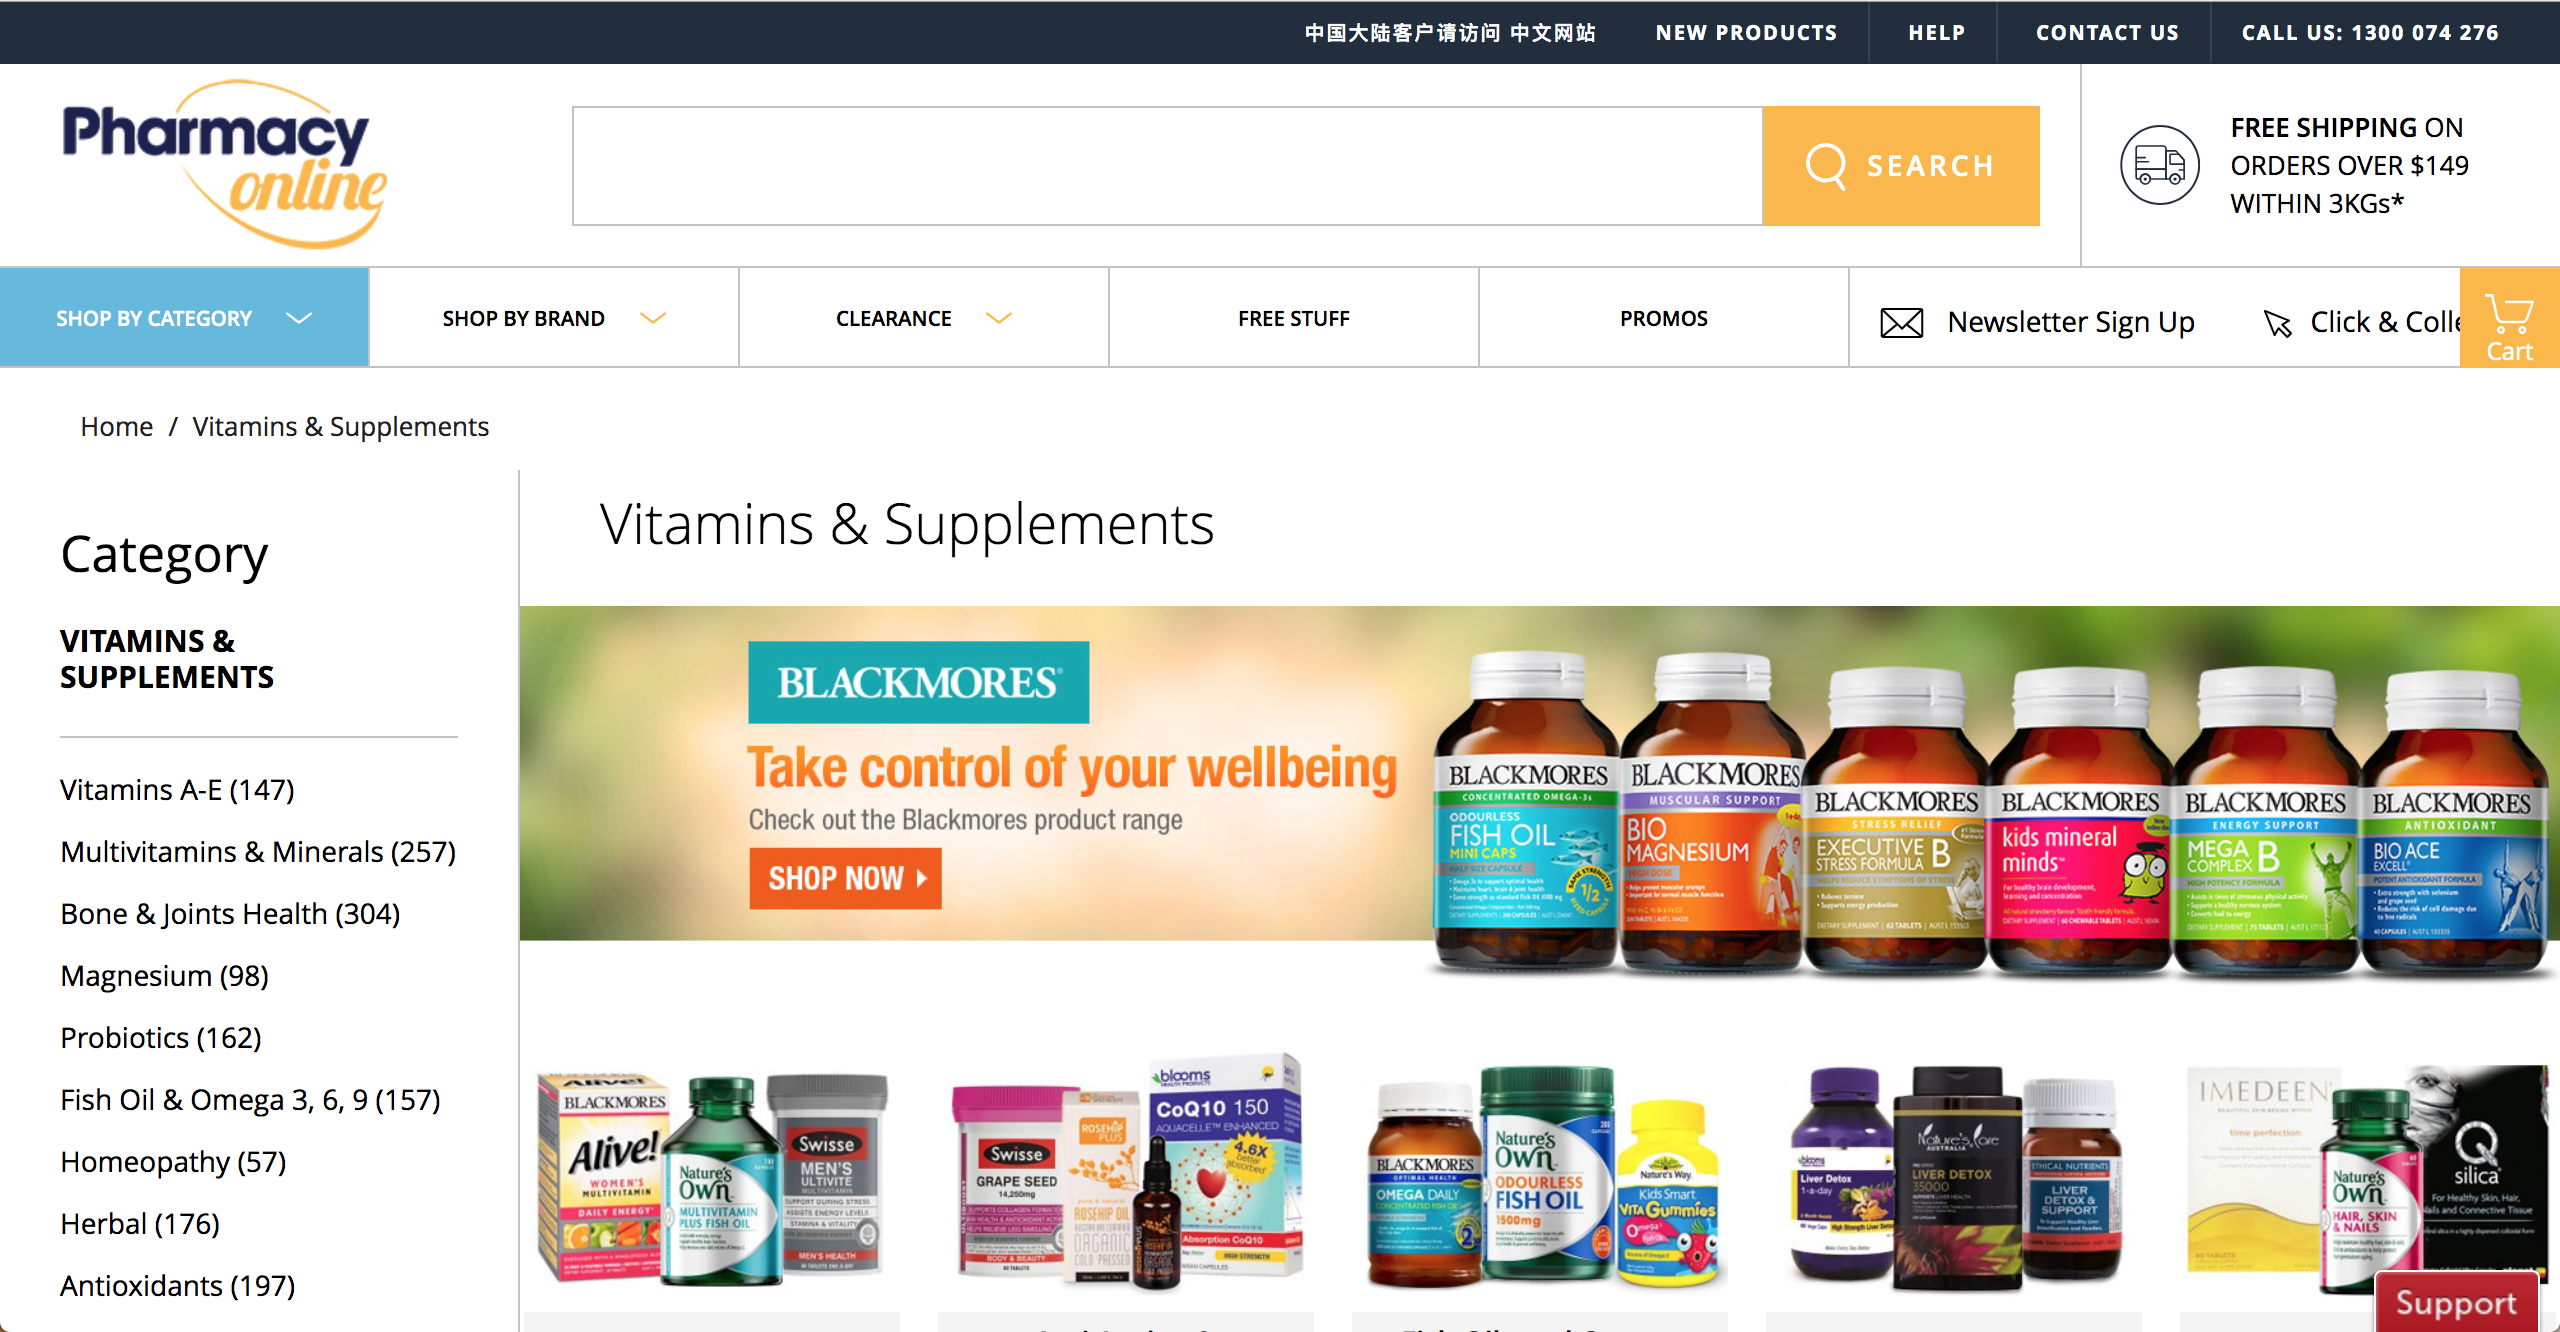 Pharmacy Online vitamins & supplements